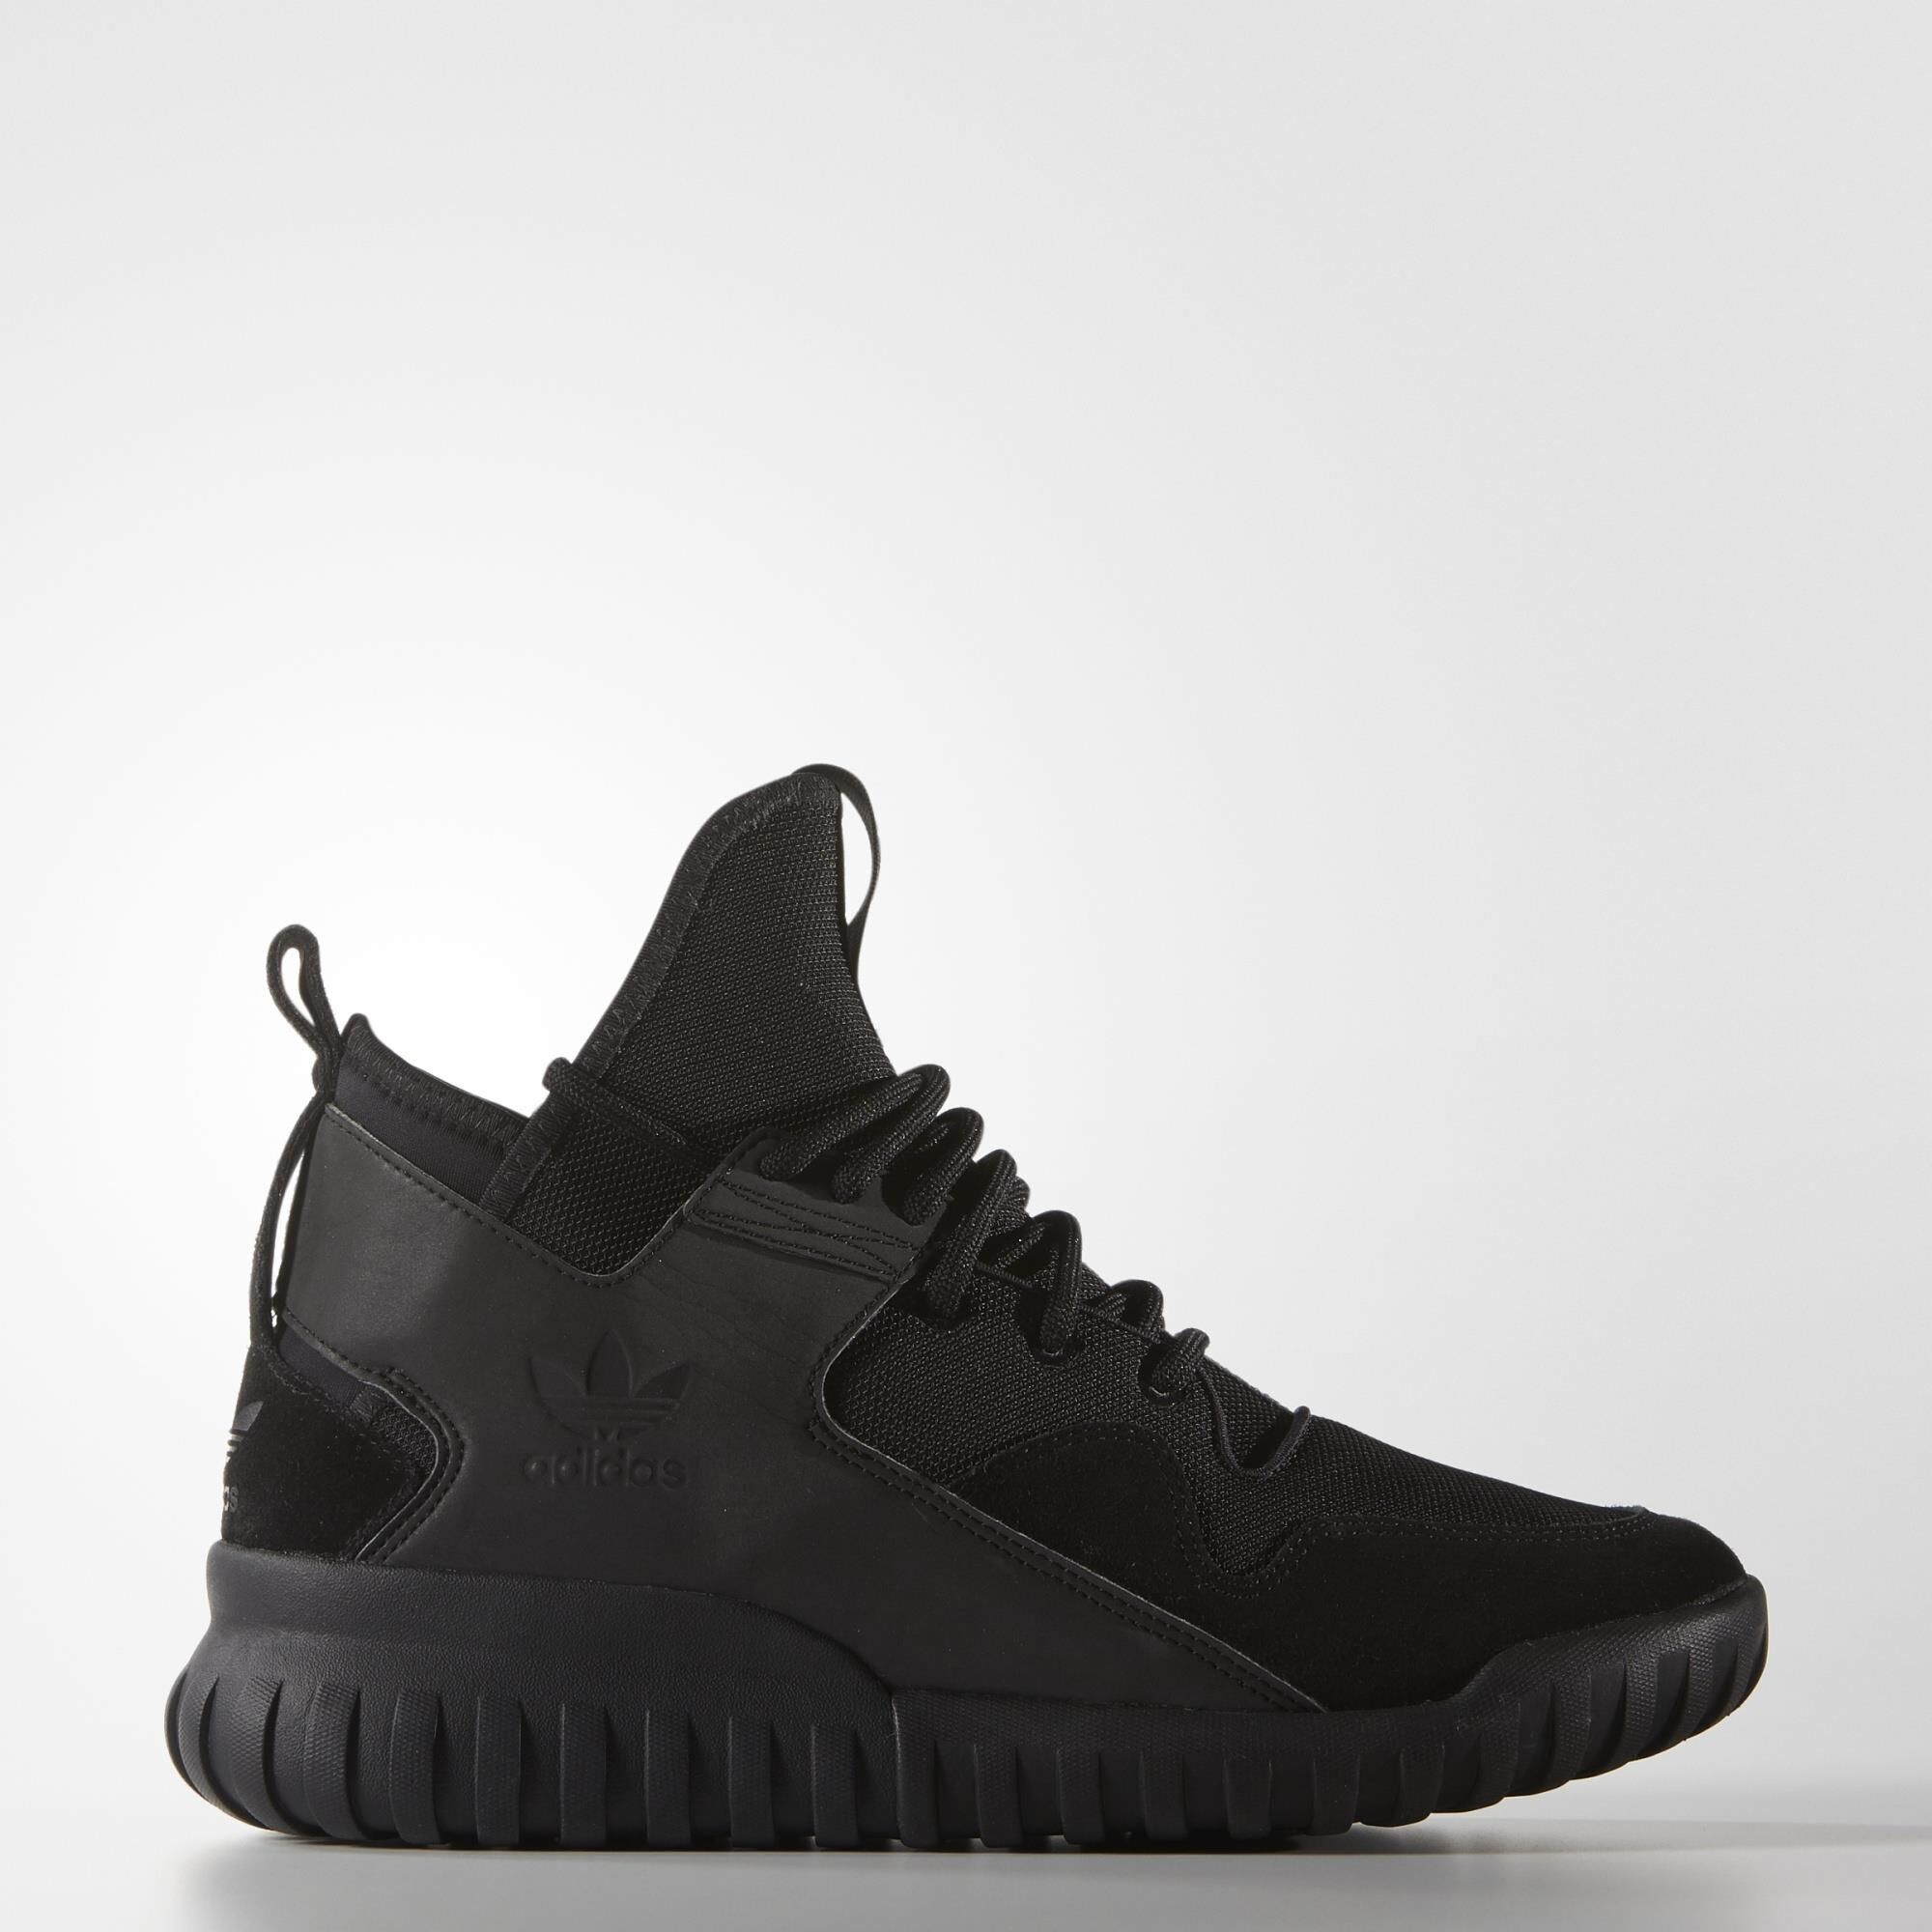 Tubular adidas Nika adidas Originals Tubular Shadow